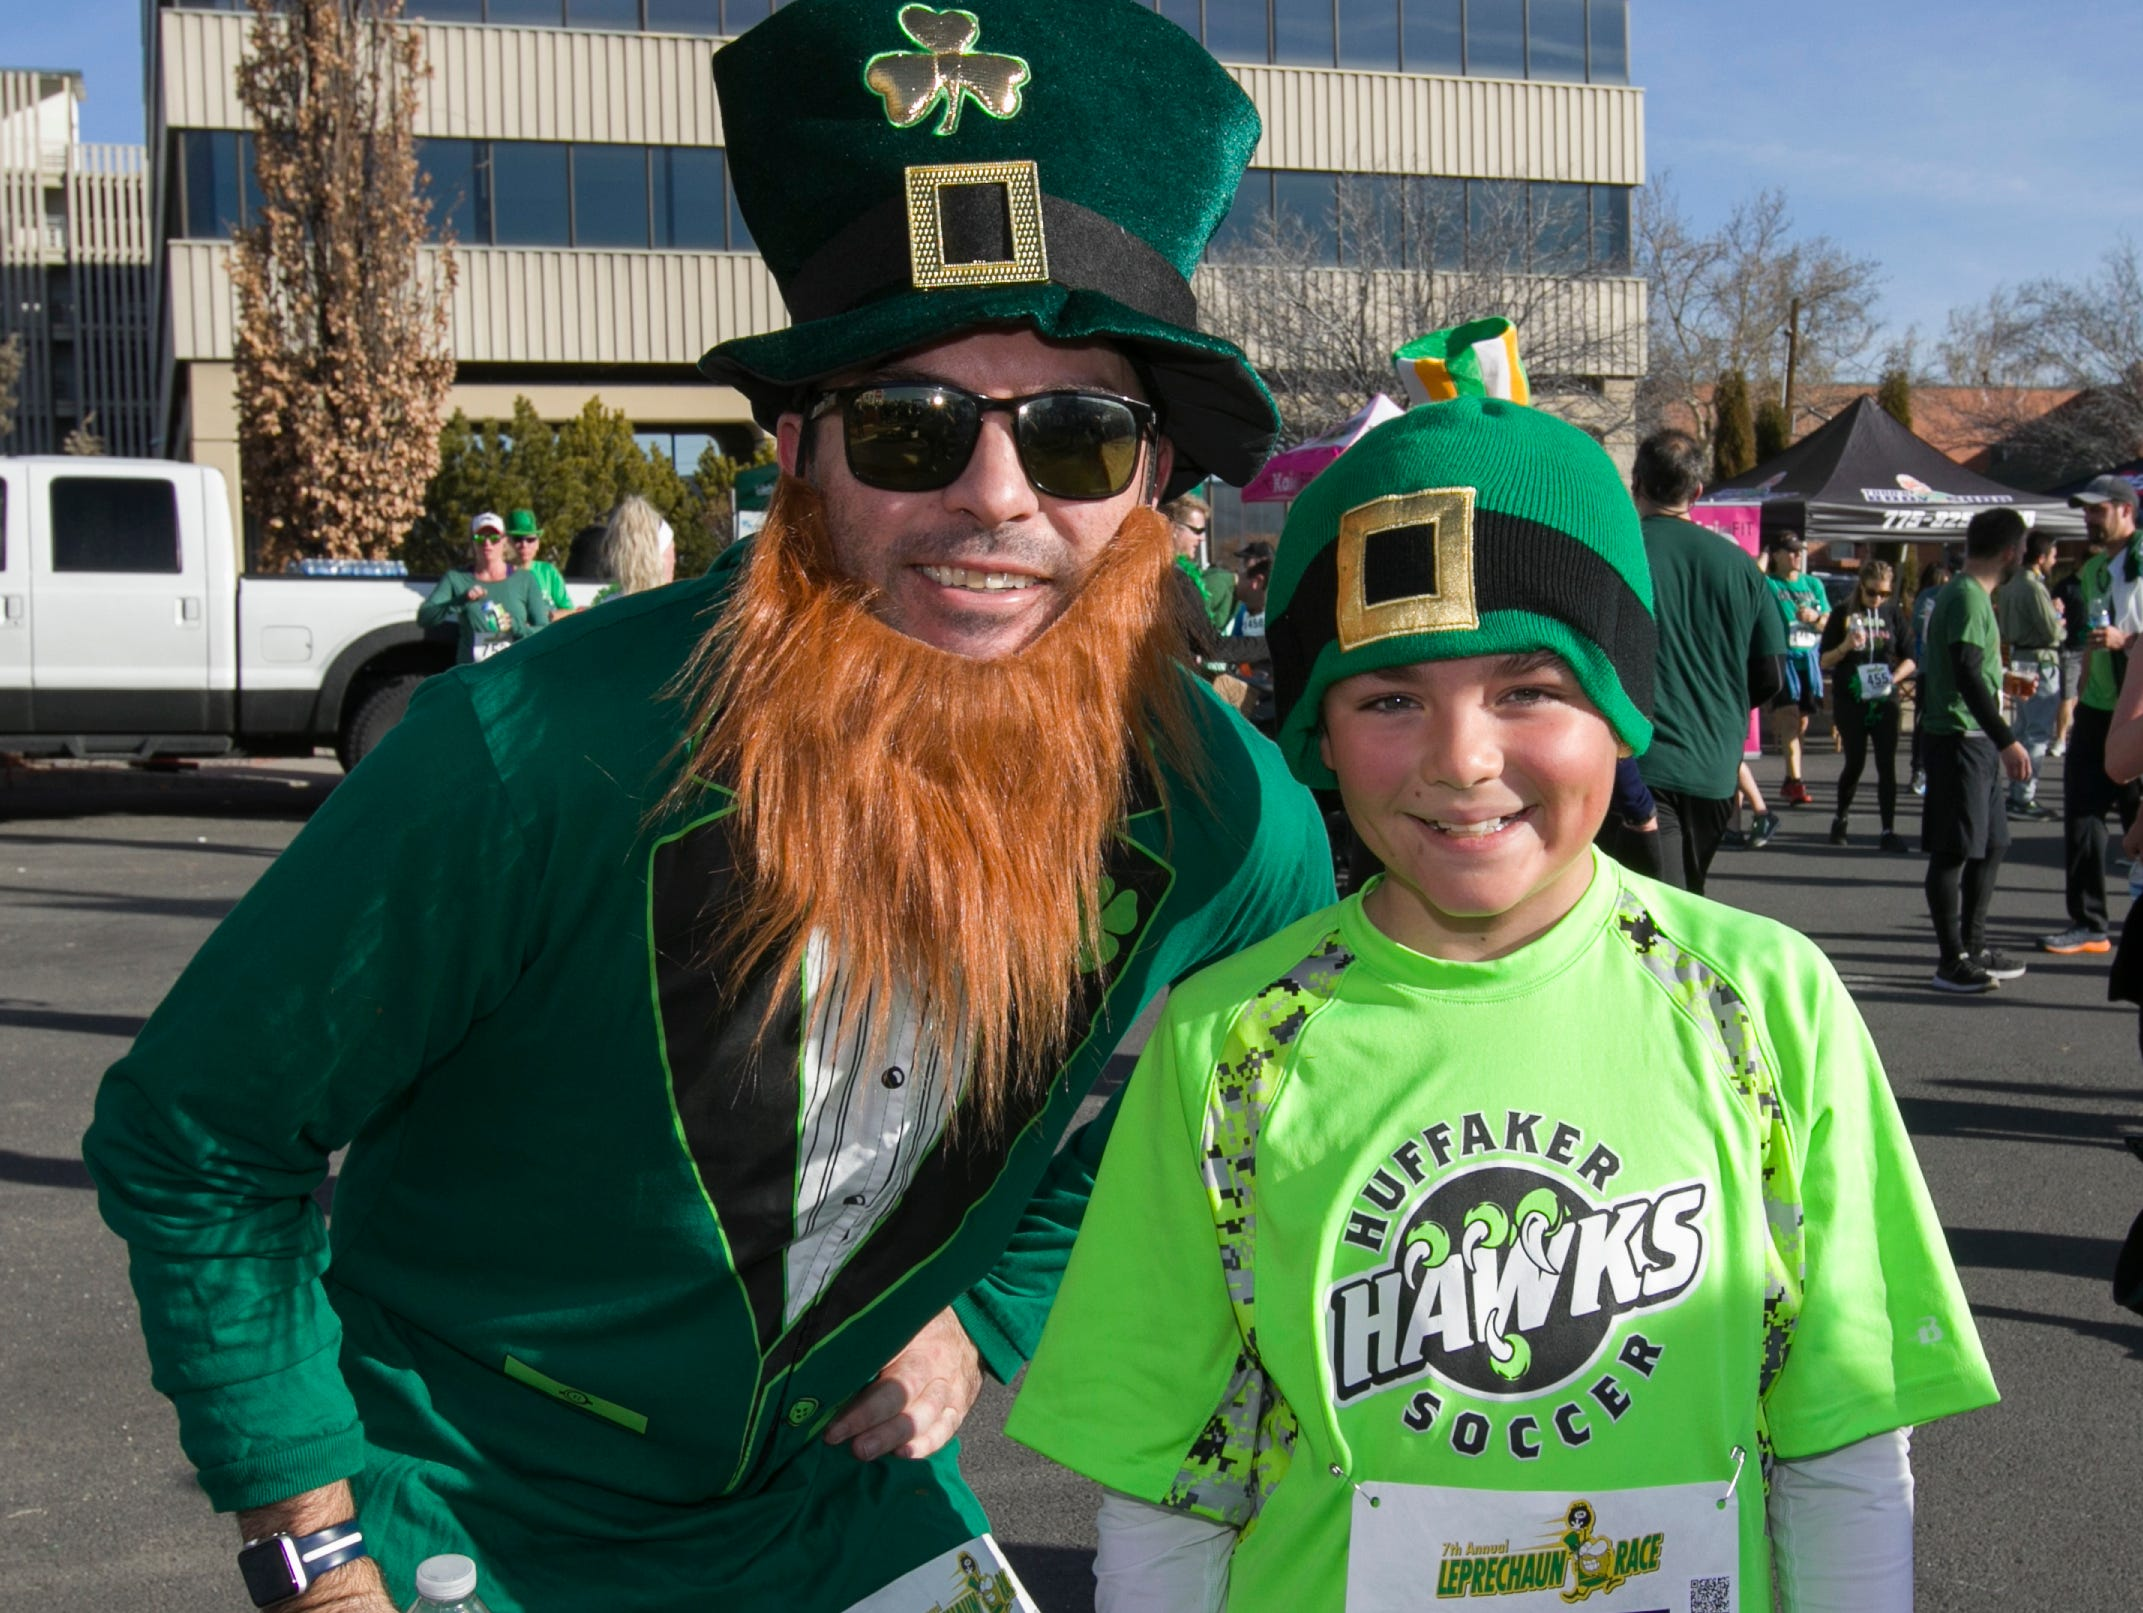 Barry and Adrian after the 7th annual Leprechaun Race in downtown Reno, Nevada on Sunday, March 17, 2019.